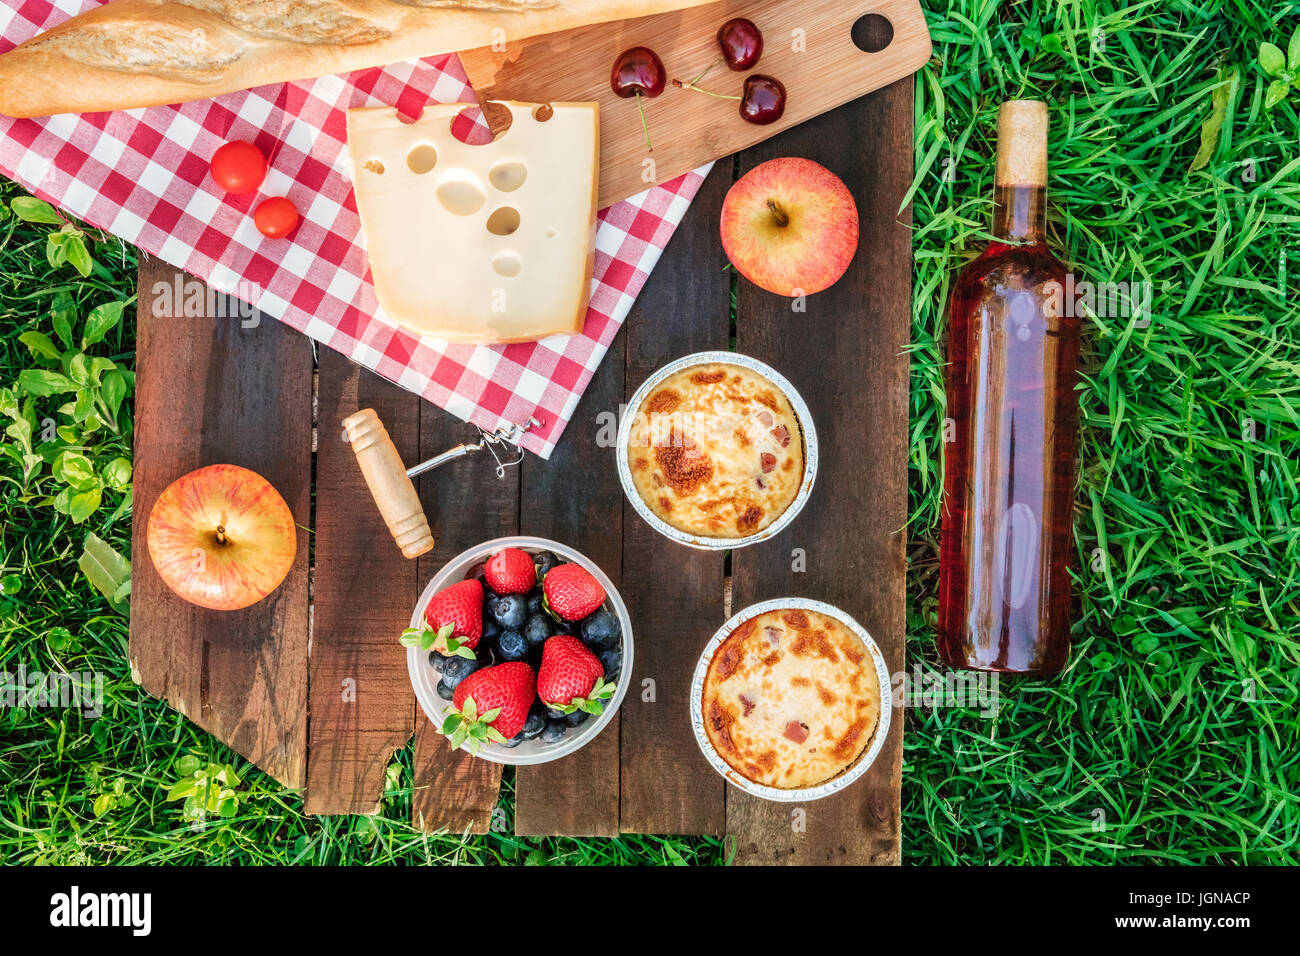 Picnic food and rose wine on wooden board with copyspace - Stock Image